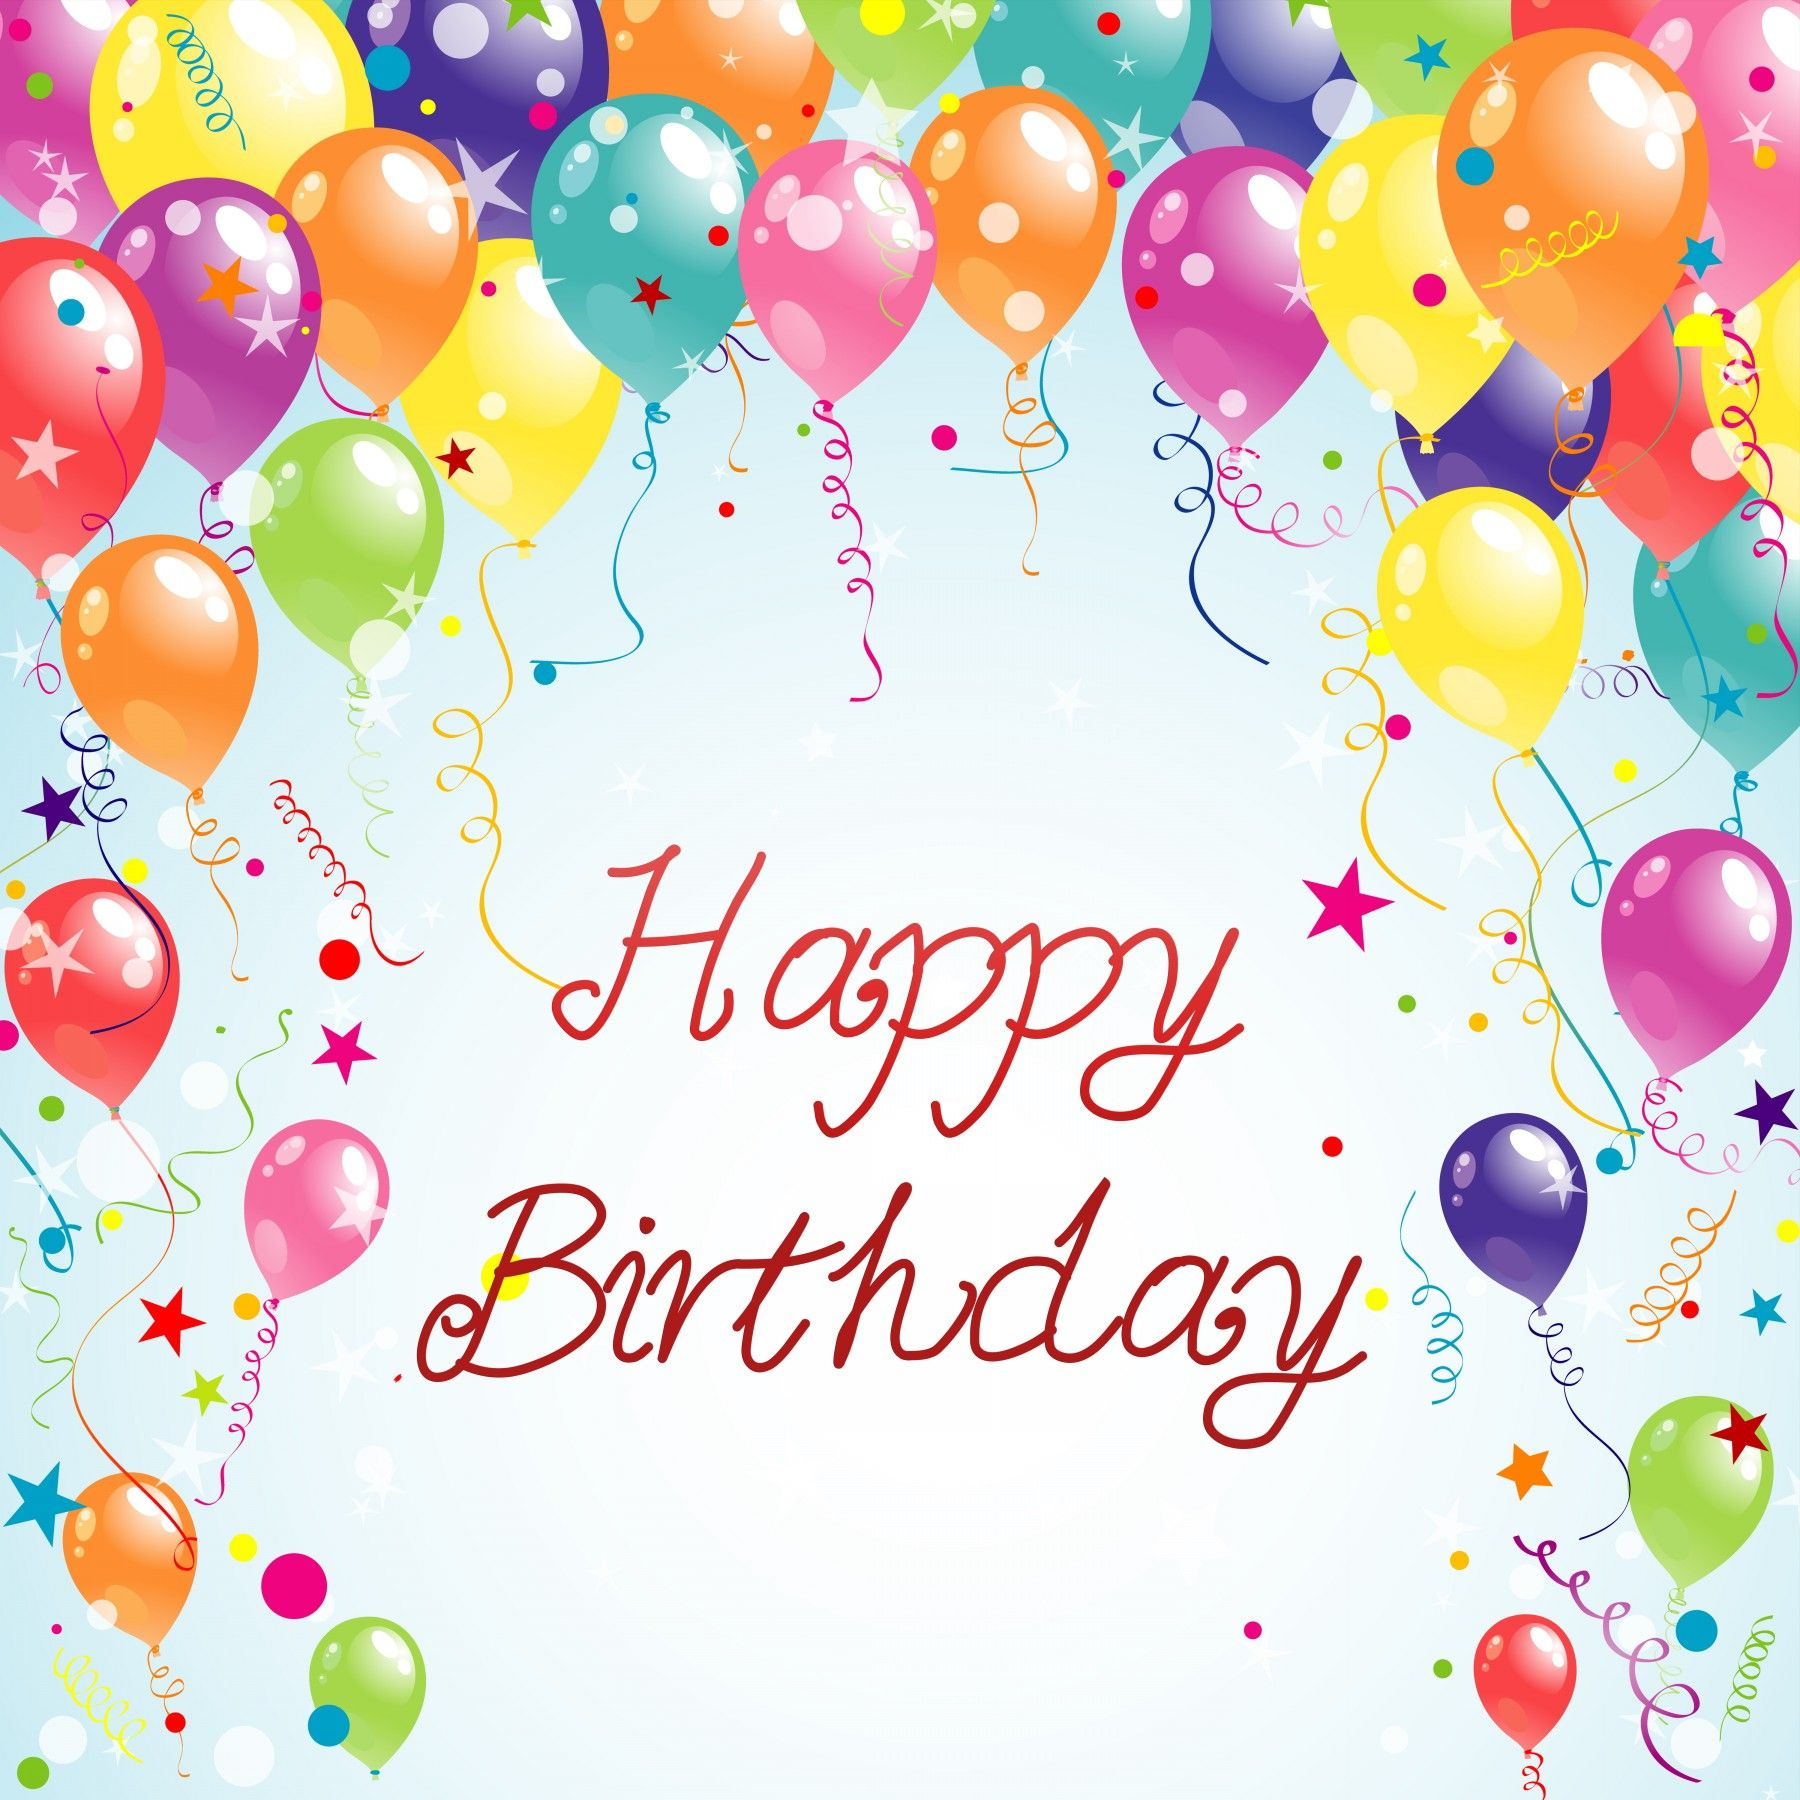 Happy Birthdaypicturesnewmediaimages3a84212506 – Greetings for Birthday Cards